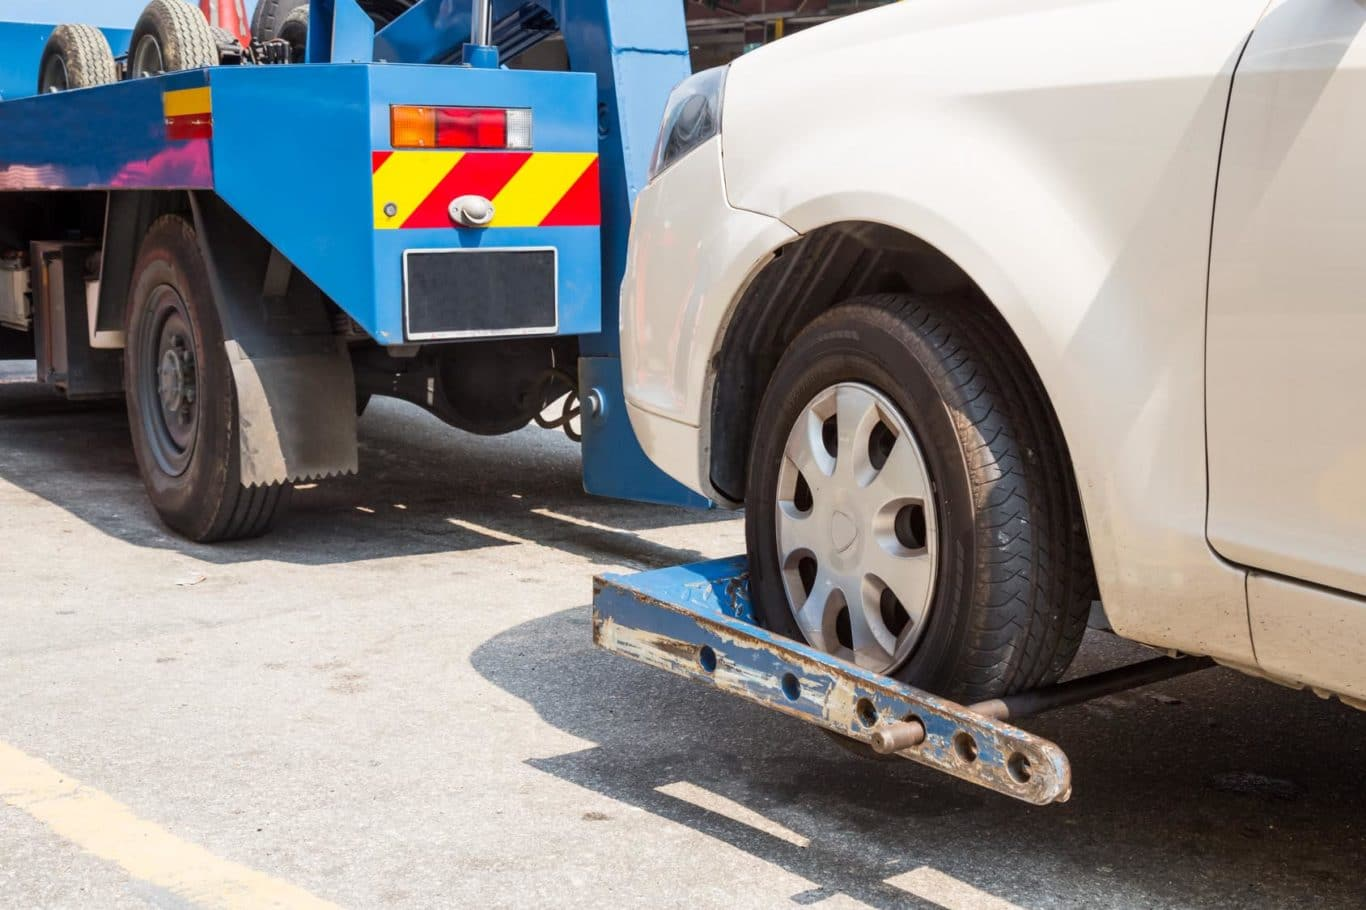 Sutton expert Car Towing services